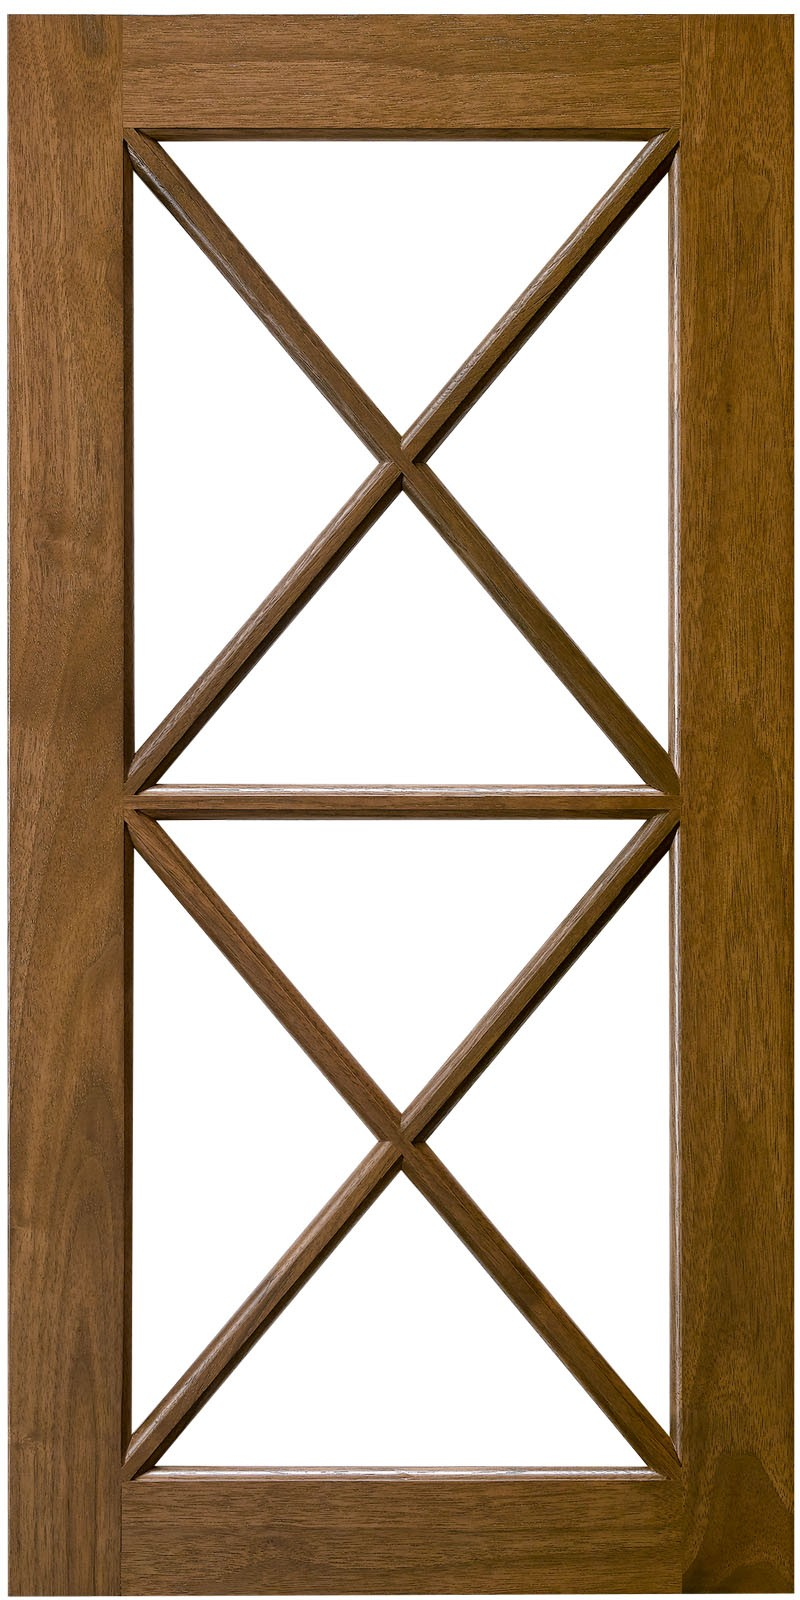 Conestoga Wood Double X Horizontal